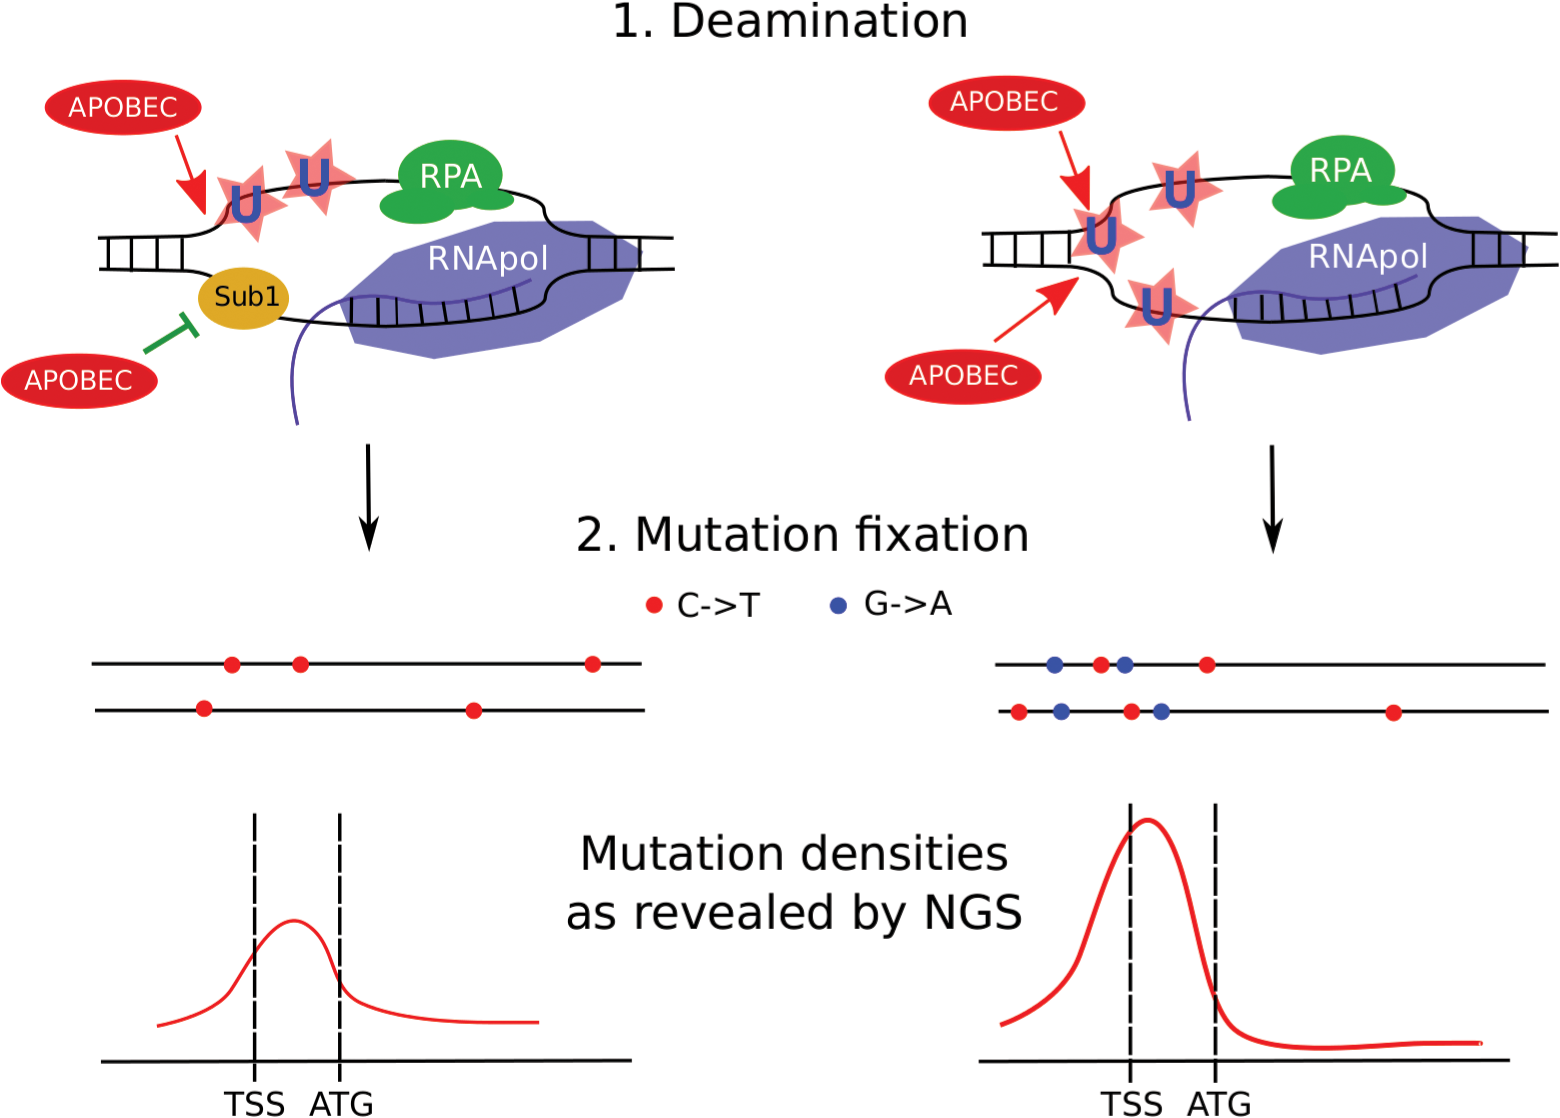 Model of transcription-dependent induction of clustered mutations in diploid cells.